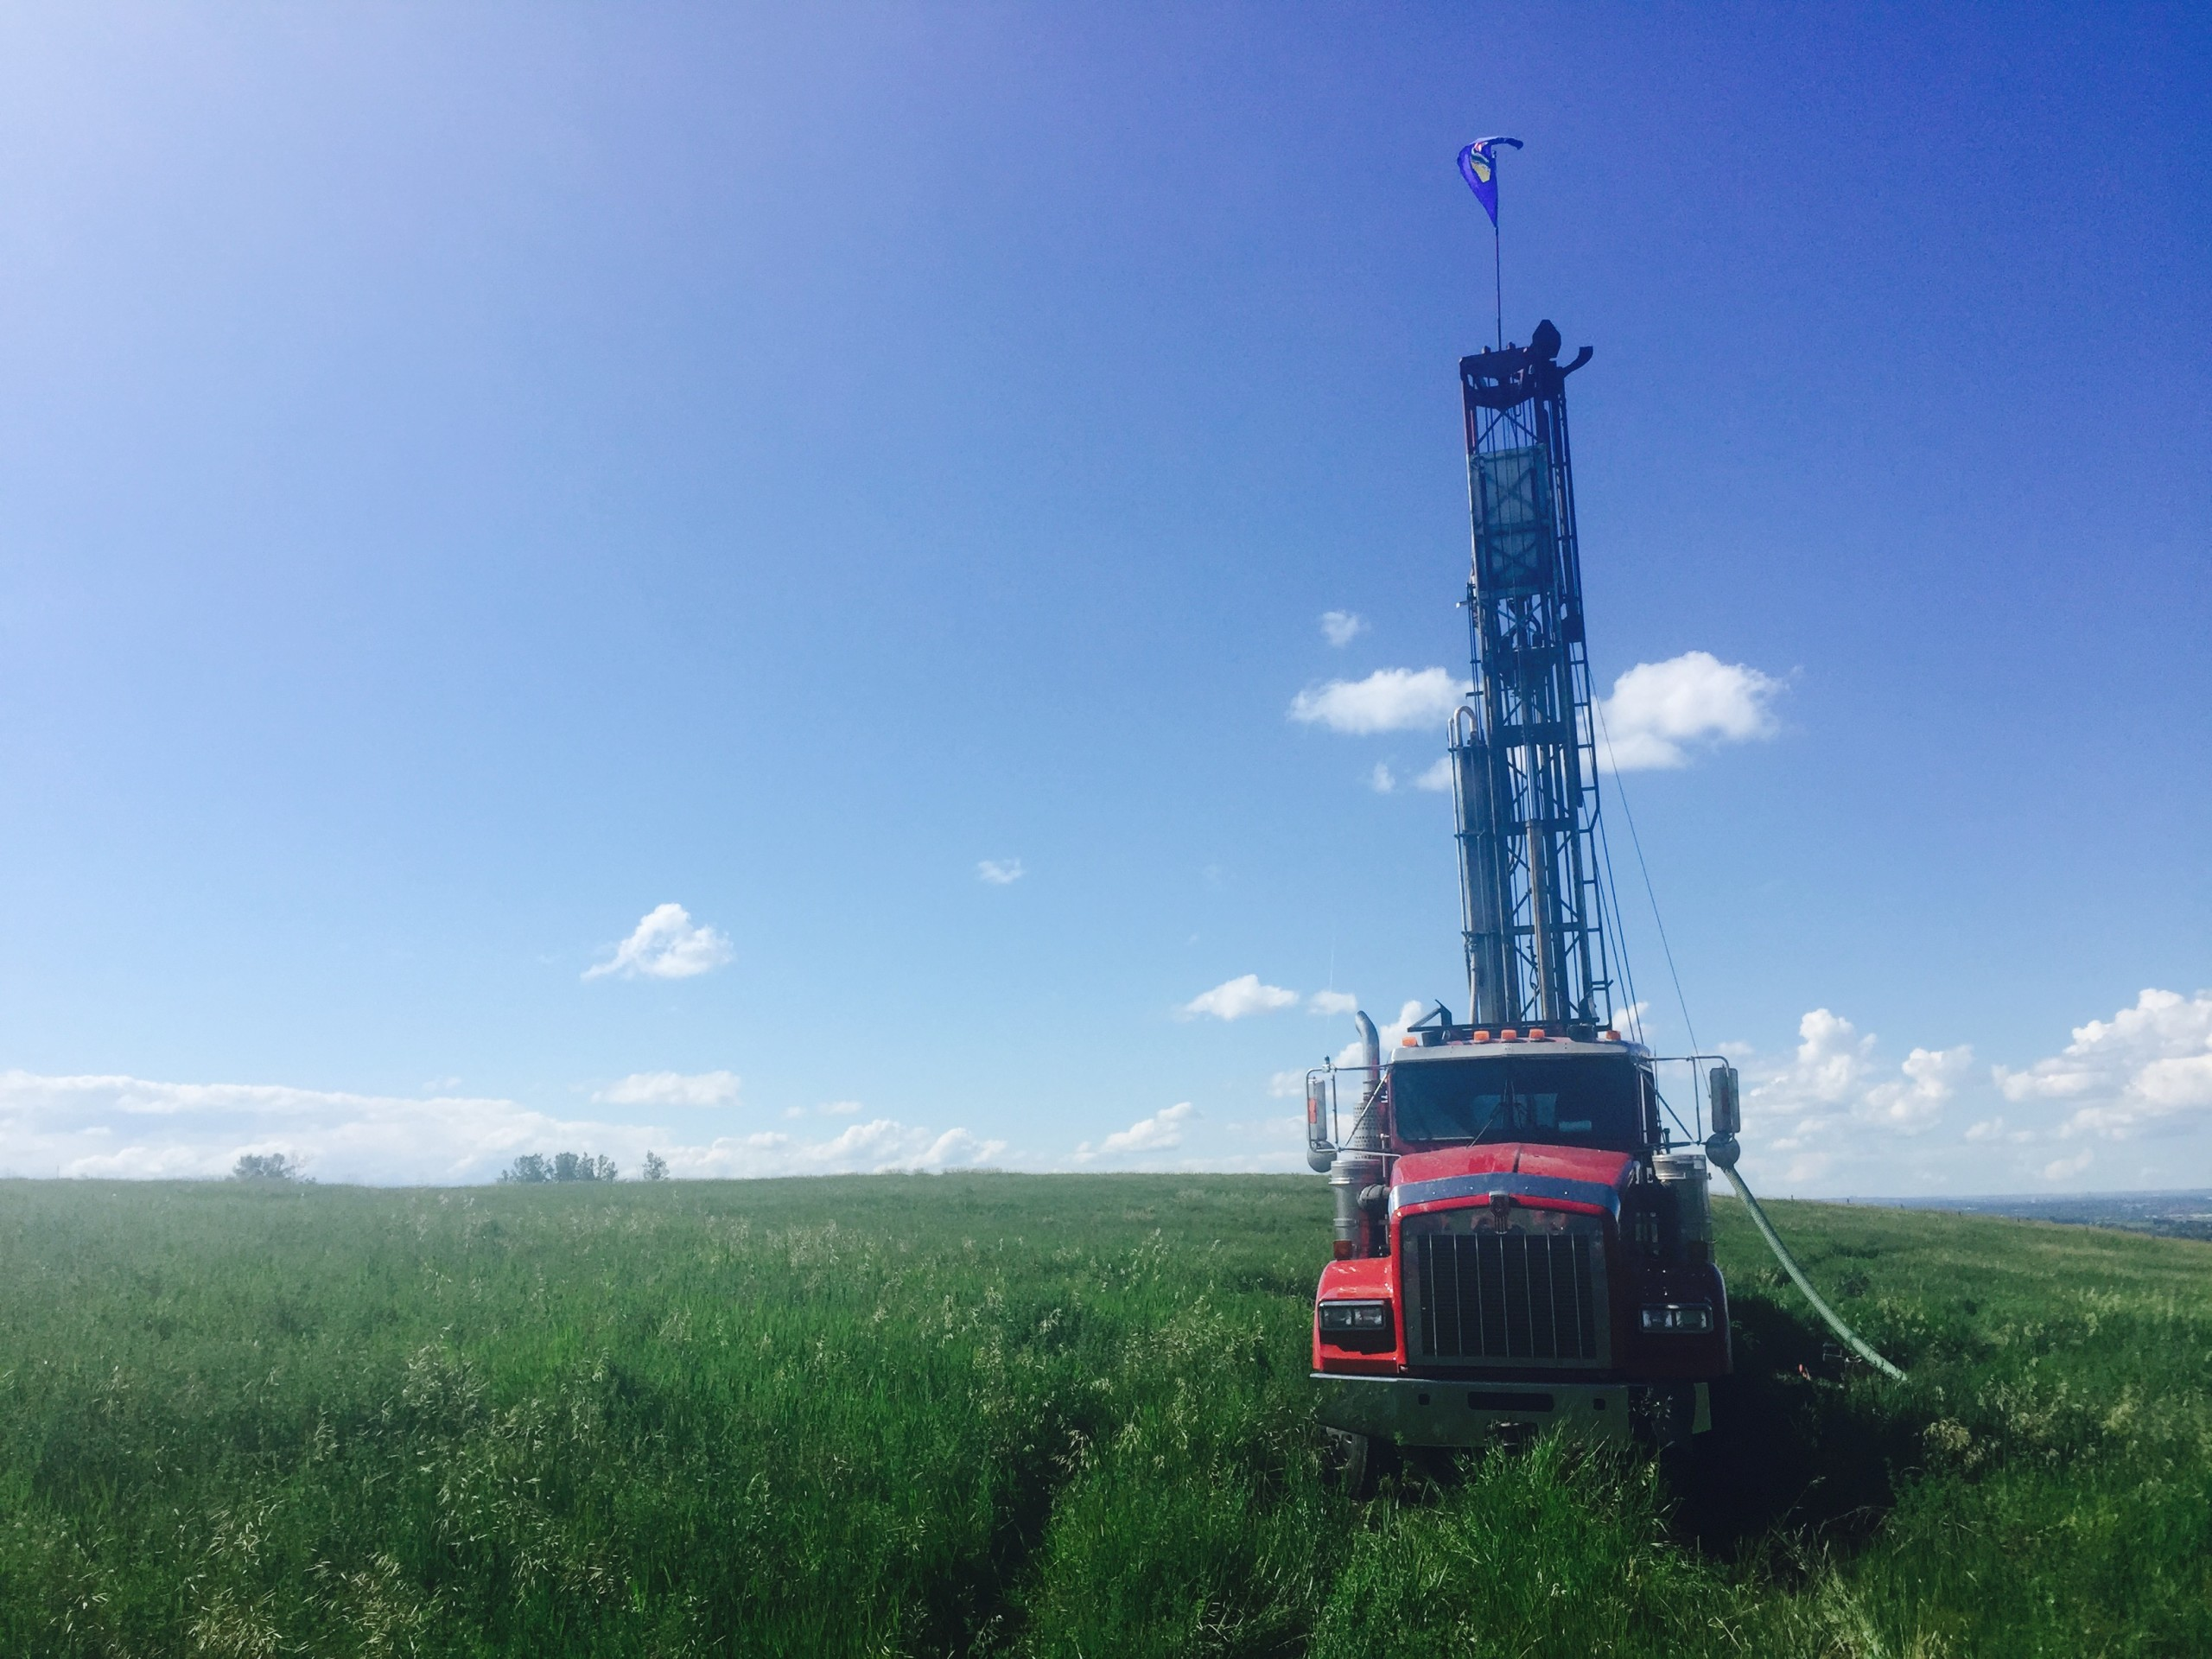 Well Drilling truck in field